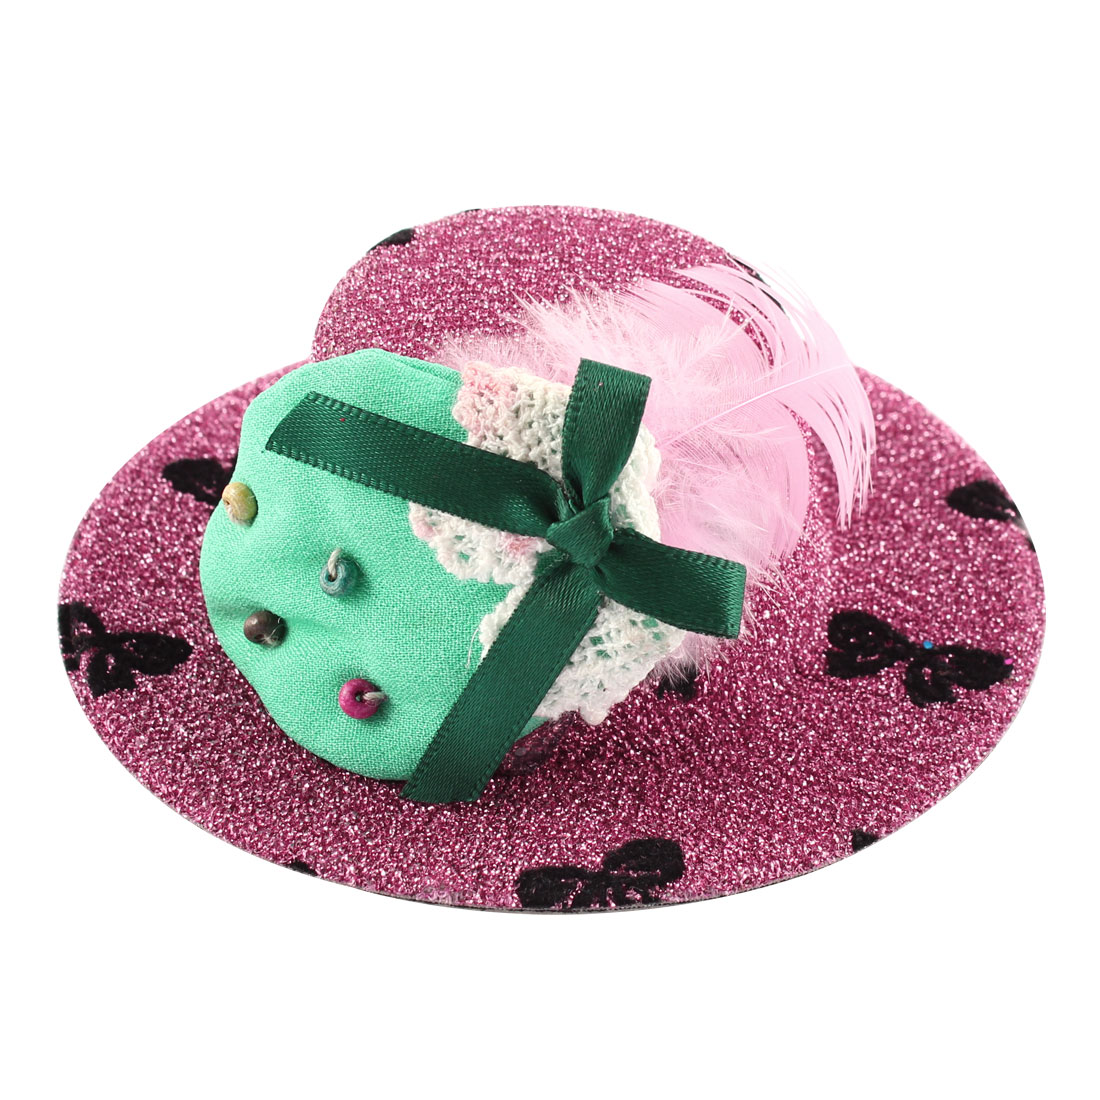 Lady Bowknot Print Cyan Strawberry Detail Glittery Tinsel Coated Top Hat Hairclip Pink